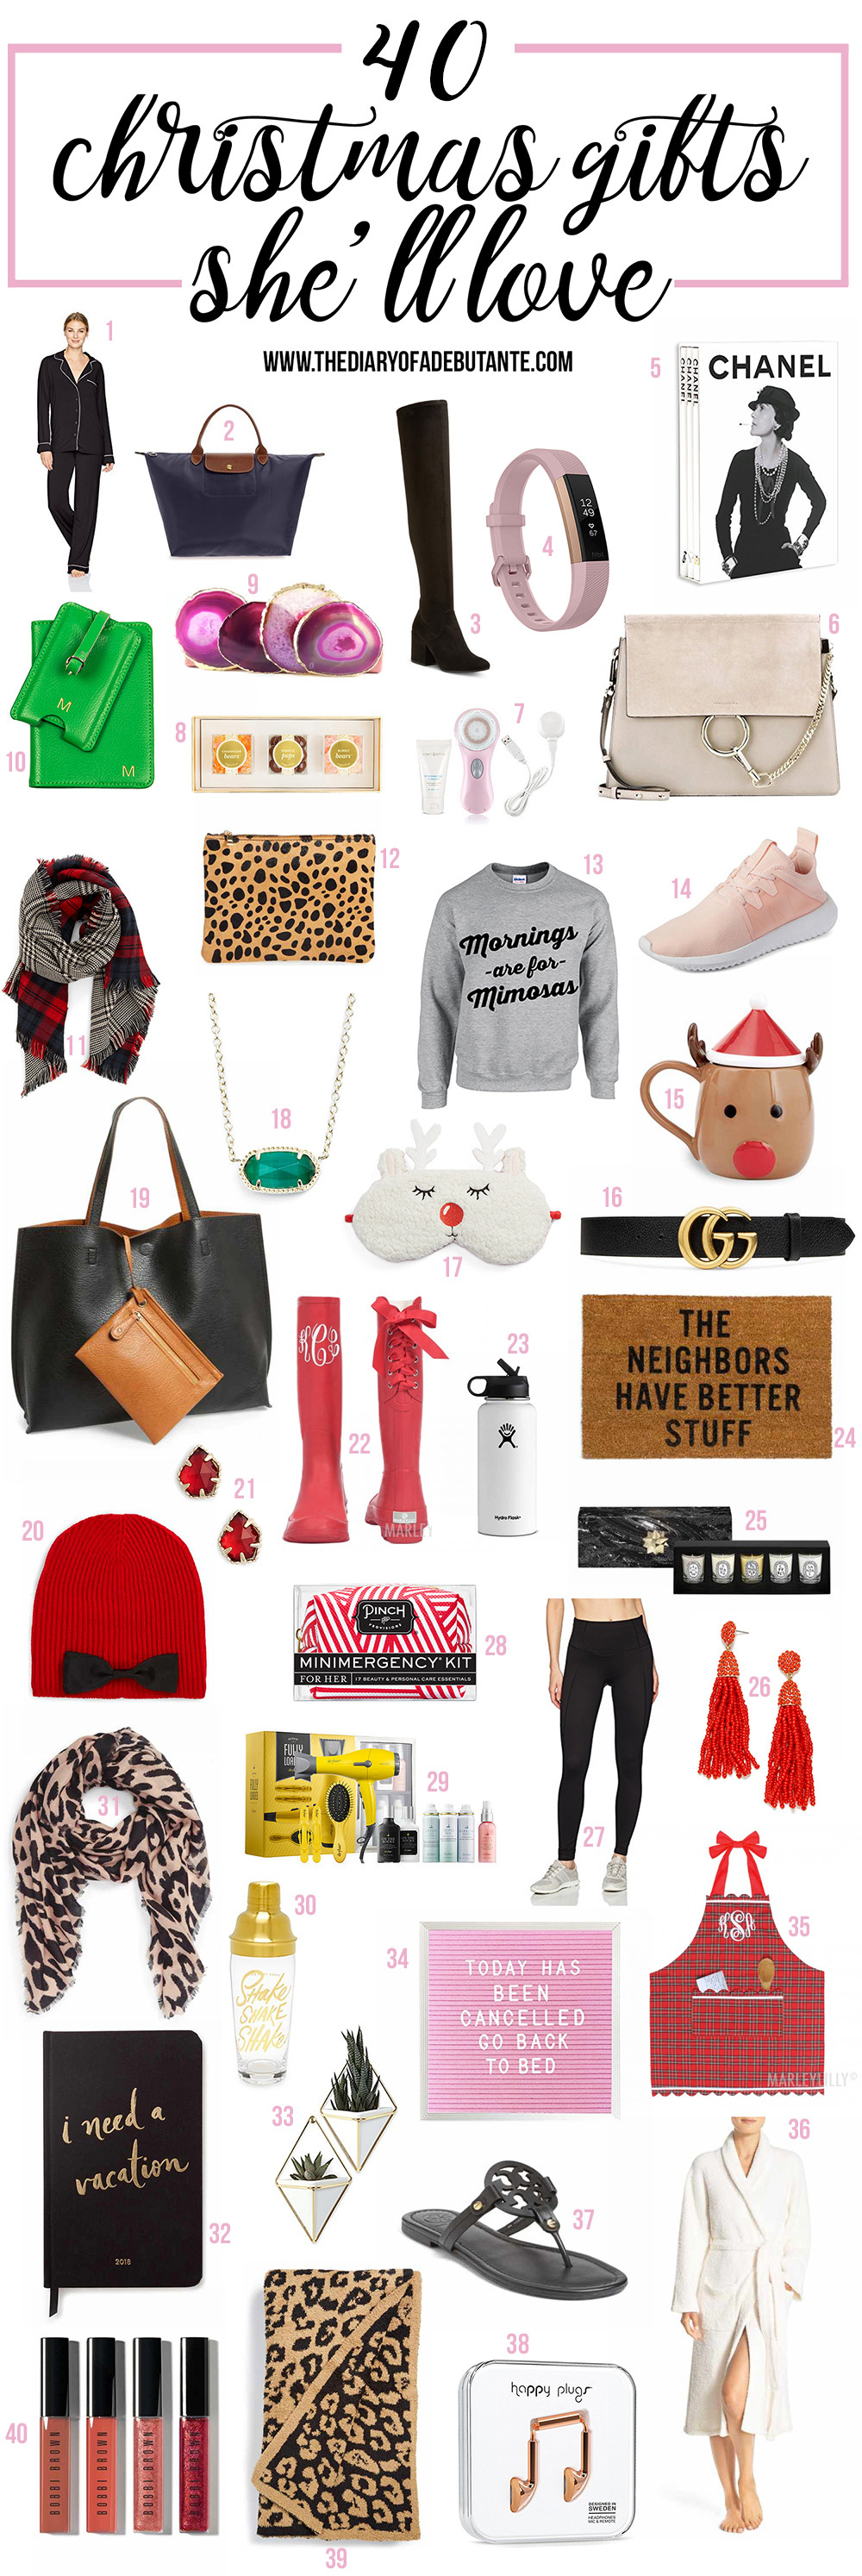 Gift Ideas For Girlfriend Christmas  Cool Gift Ideas for Girlfriend Mom or BFF this Holiday